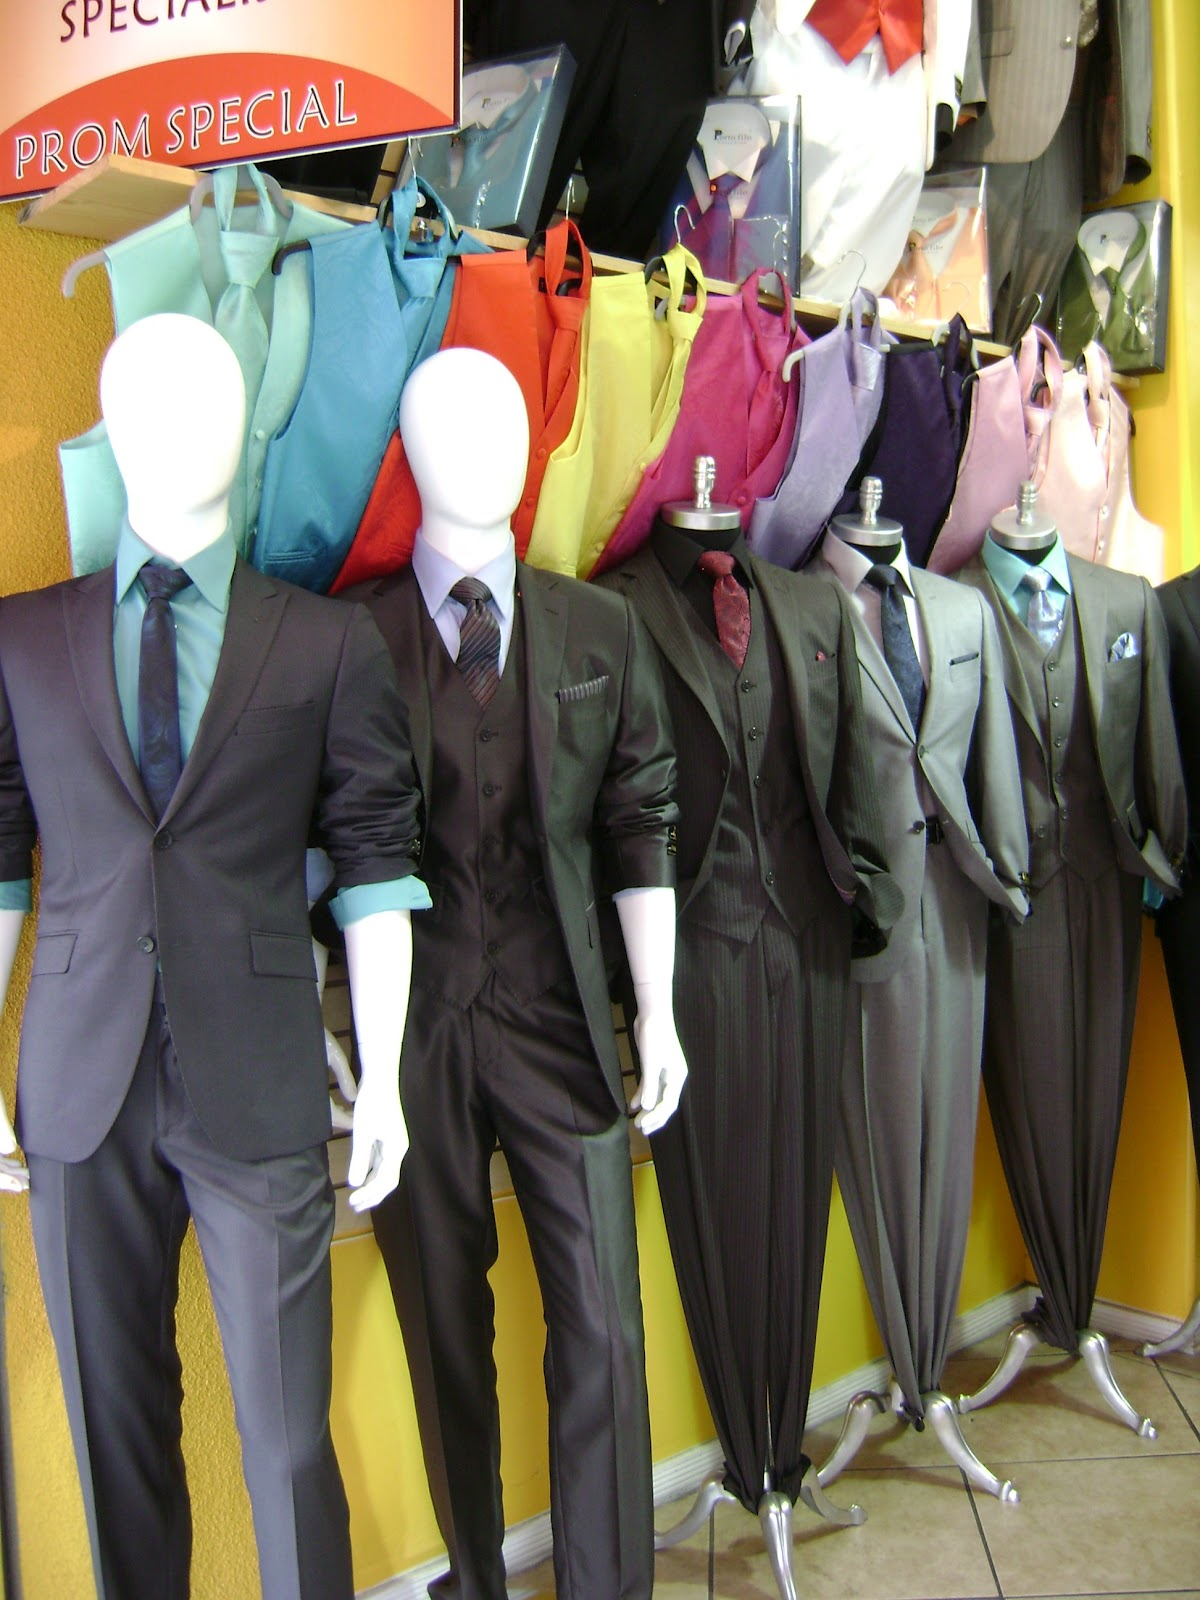 The Santee Alley: How to save money on prom at Santee Alley